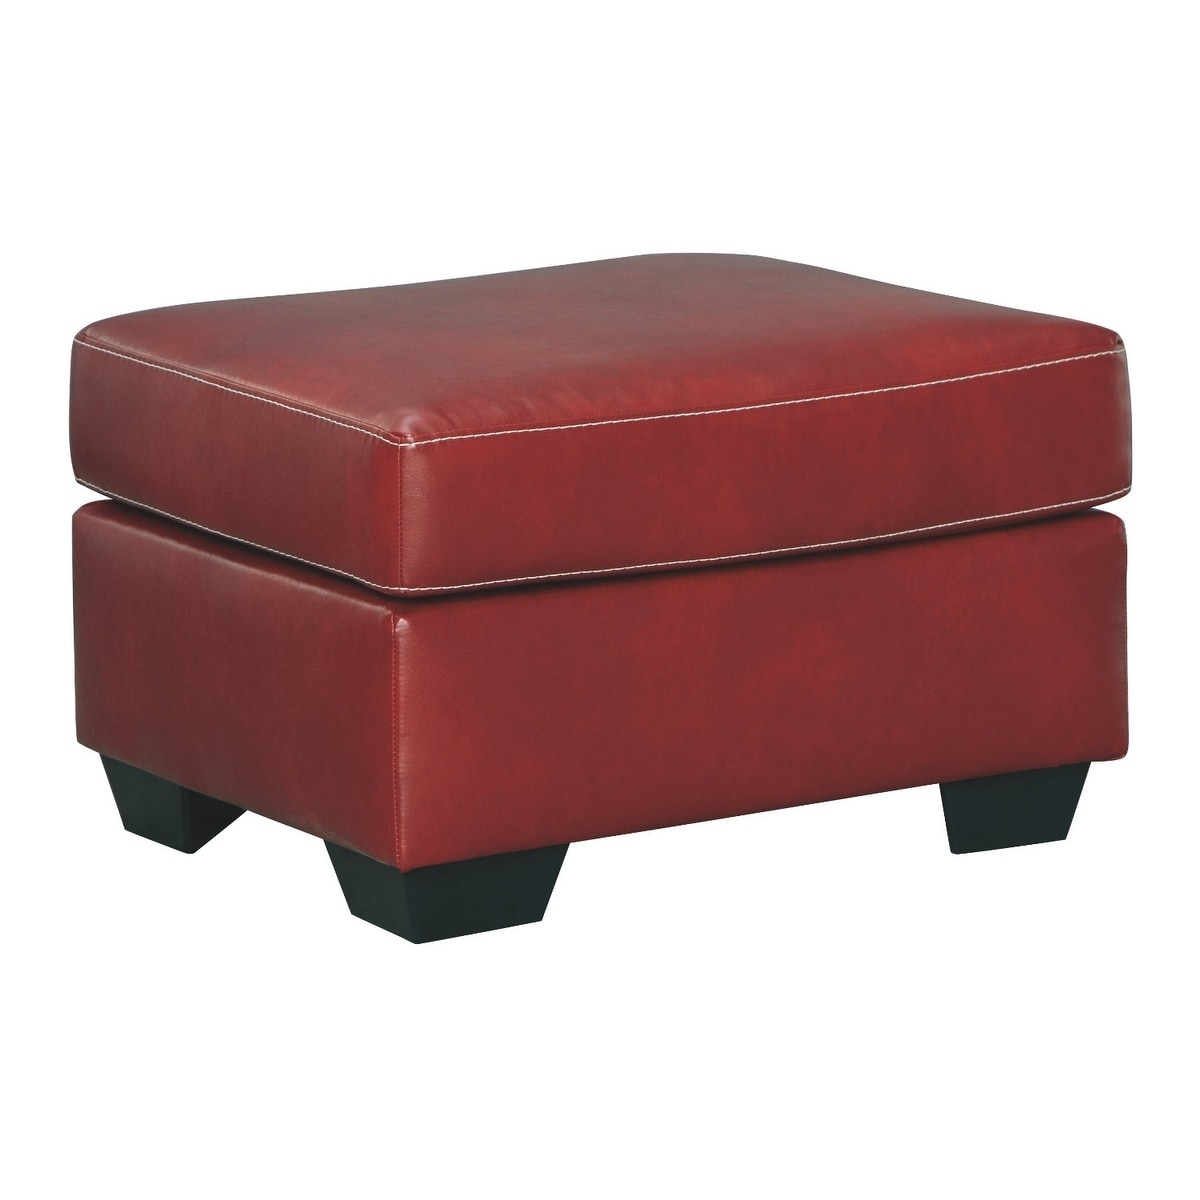 Best Signature Design By Ashley Betrillo Salsa Faux Leather Ottoman Red Polyester Blend In 2019 400 x 300